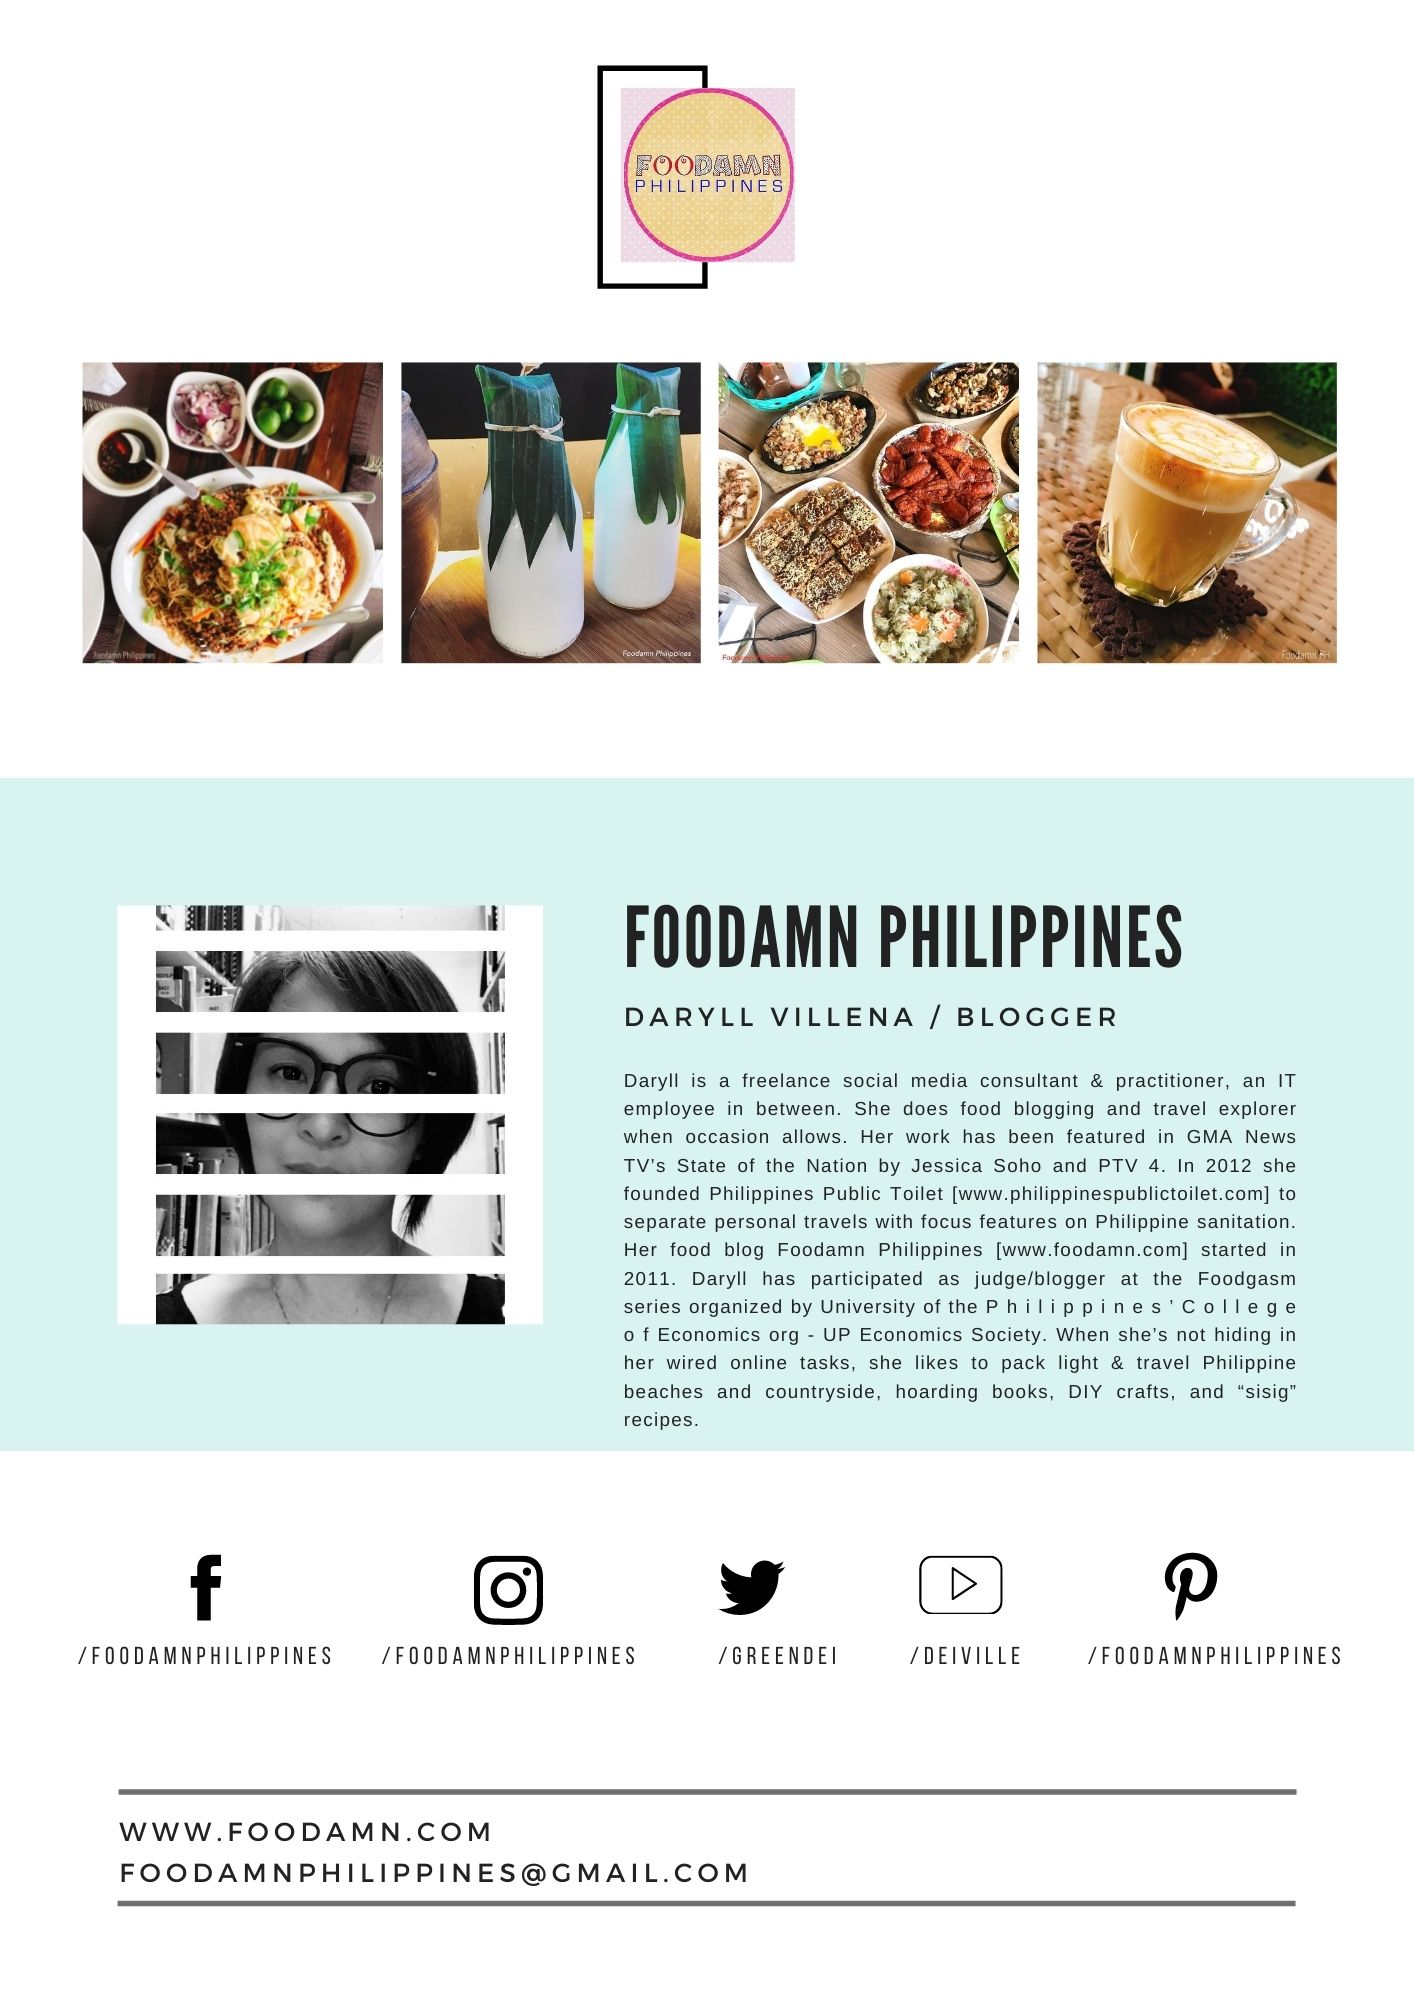 about foodamn philippines